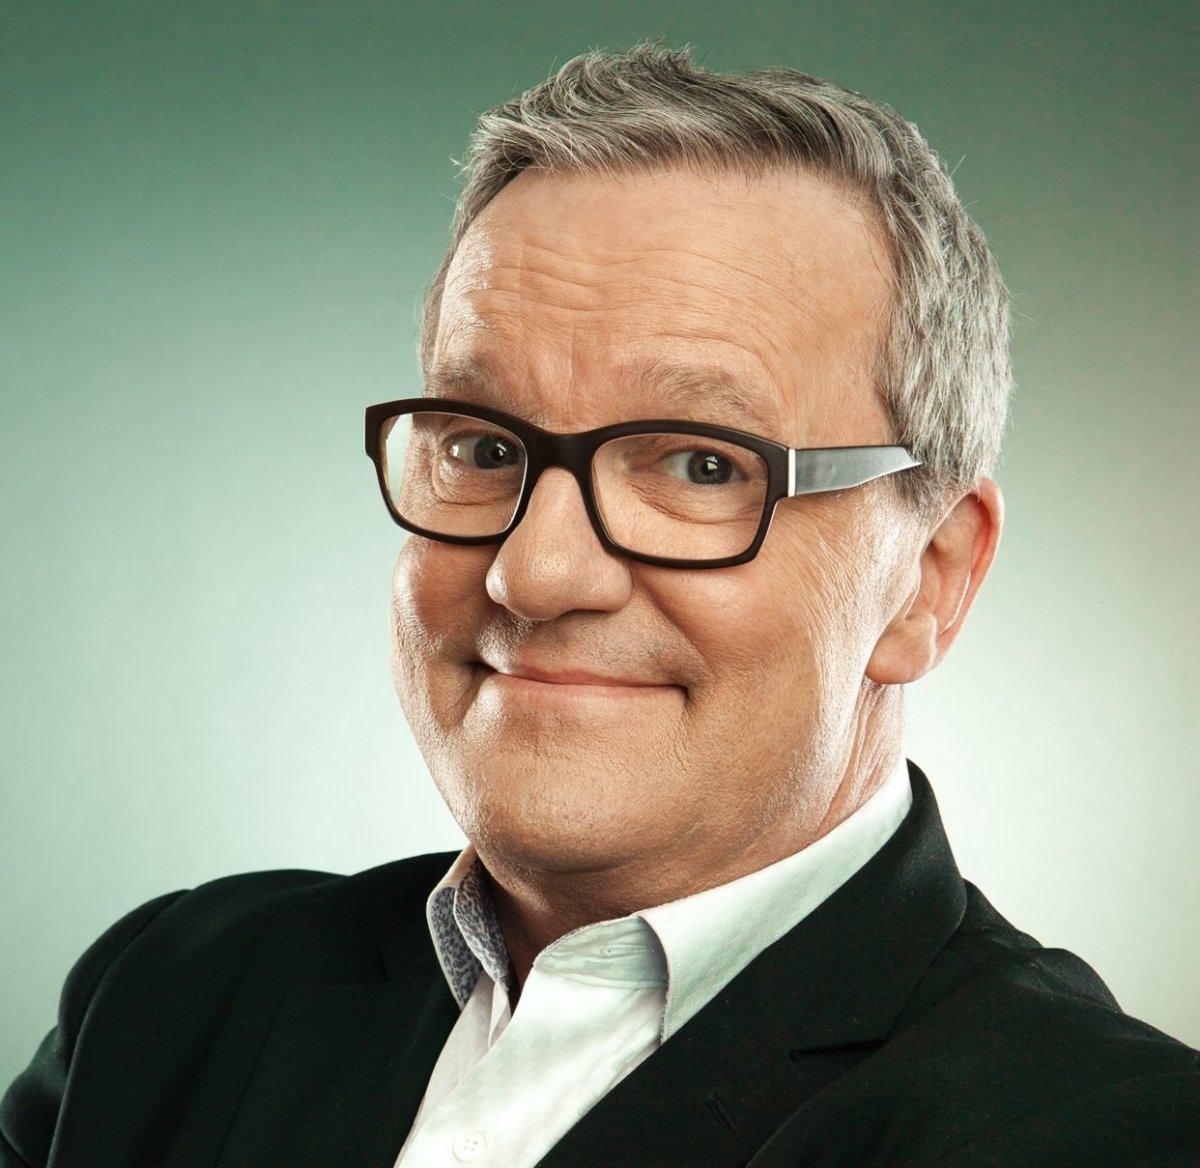 Mark Lowry penned the lyrics to Mary did you know.